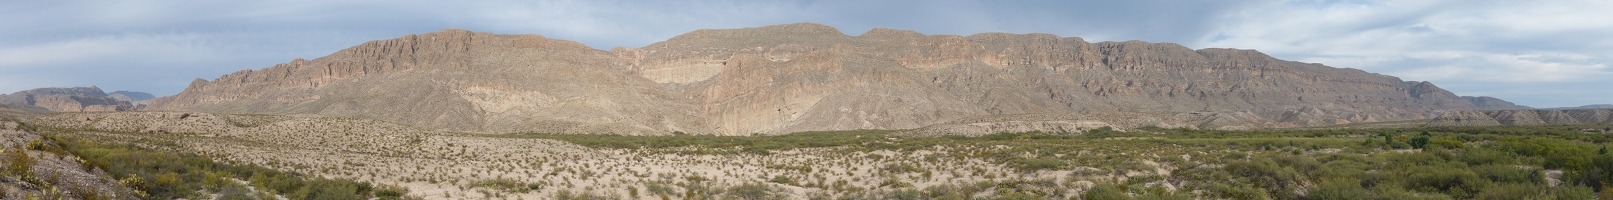 Boquillas Canyon Overlook panoramic